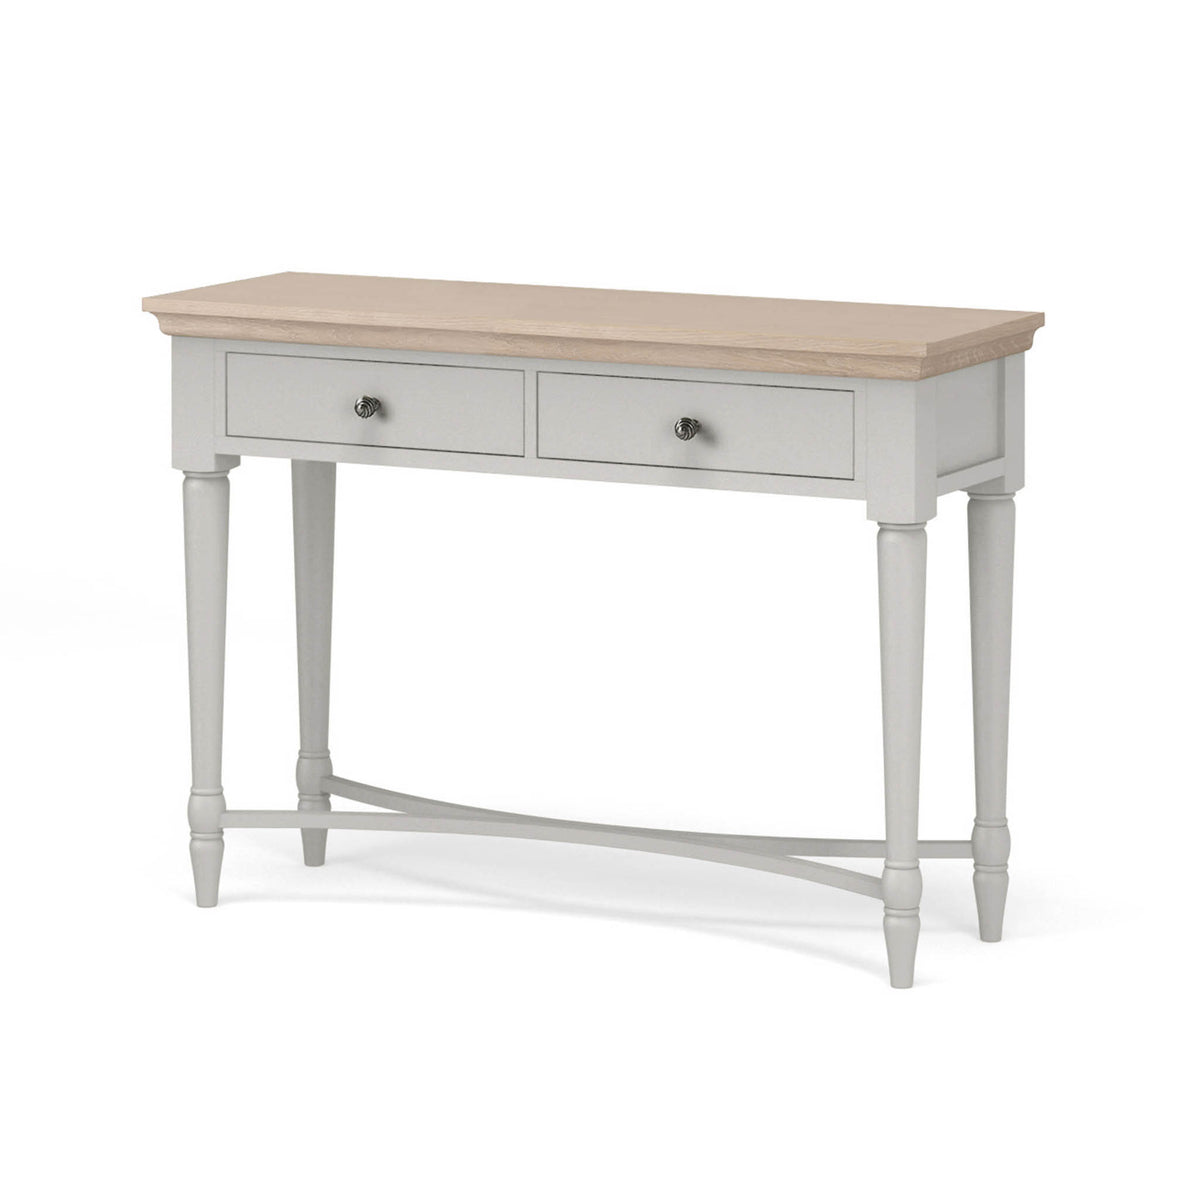 Melrose Grey Hallway Table from Roseland Furniture